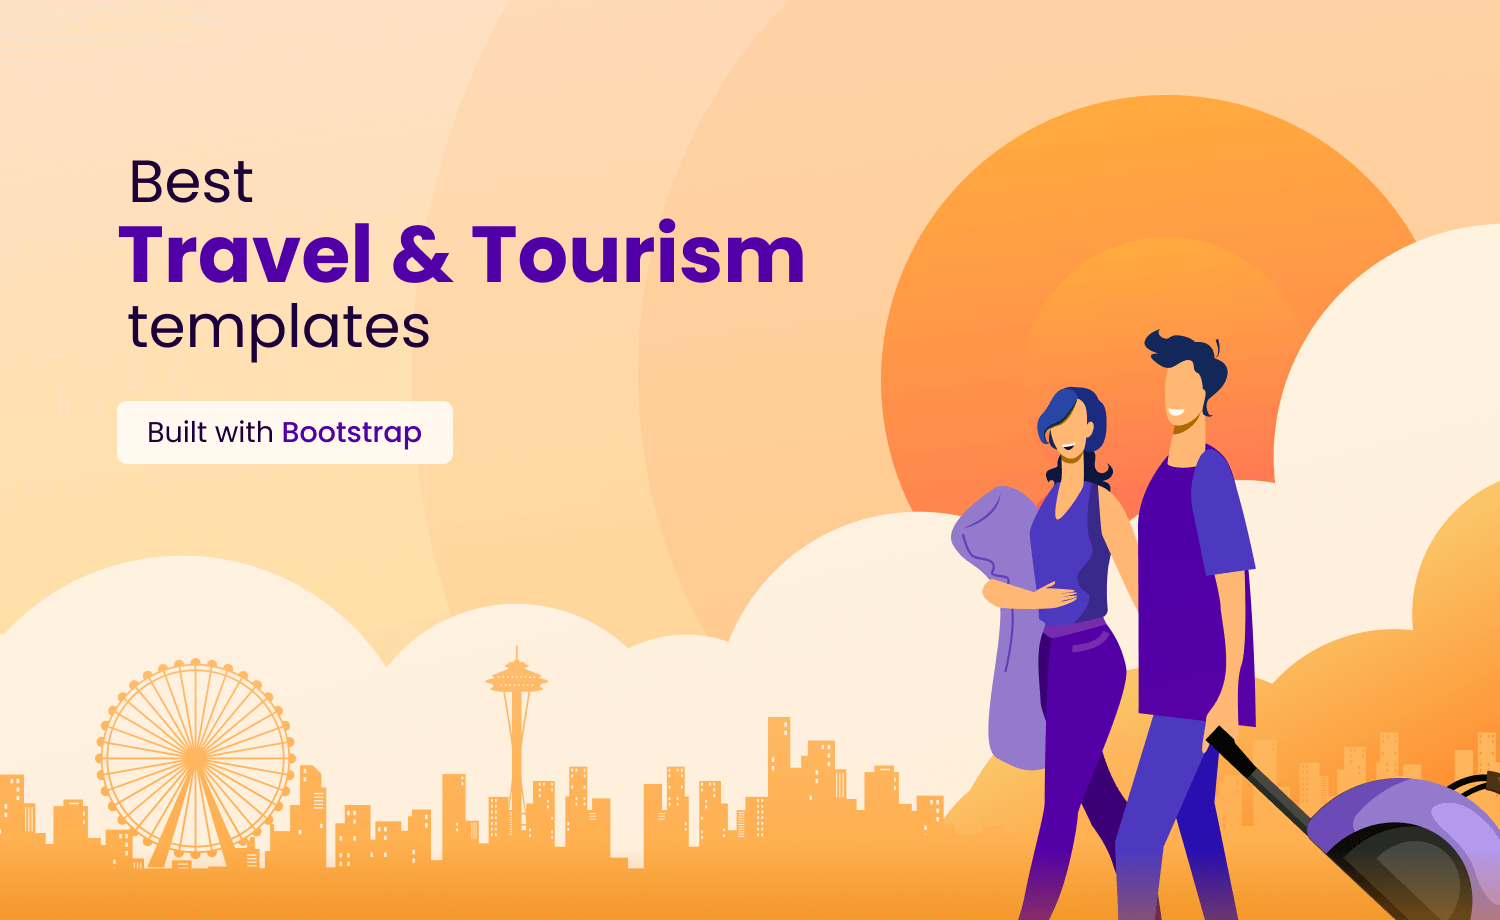 Best Travel & Tourism Template built with Bootstrap